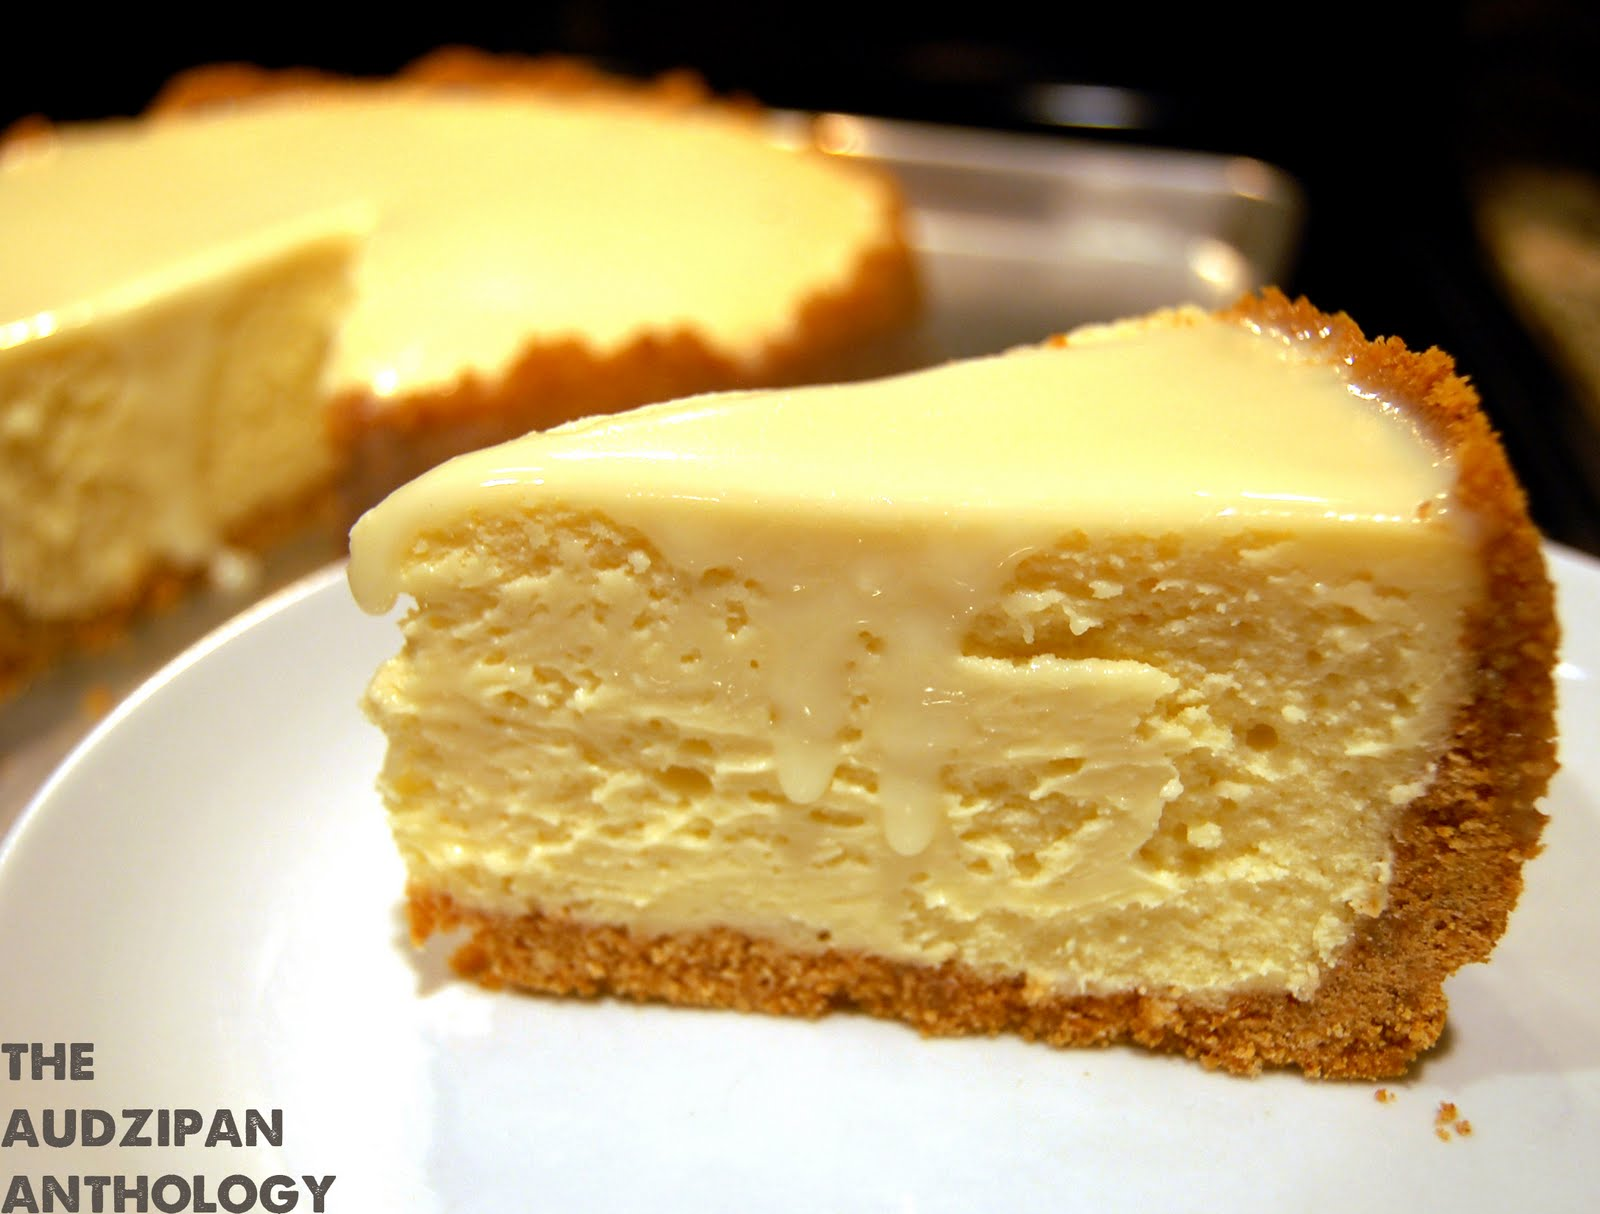 the audzipan anthology: White Chocolate Cheesecake